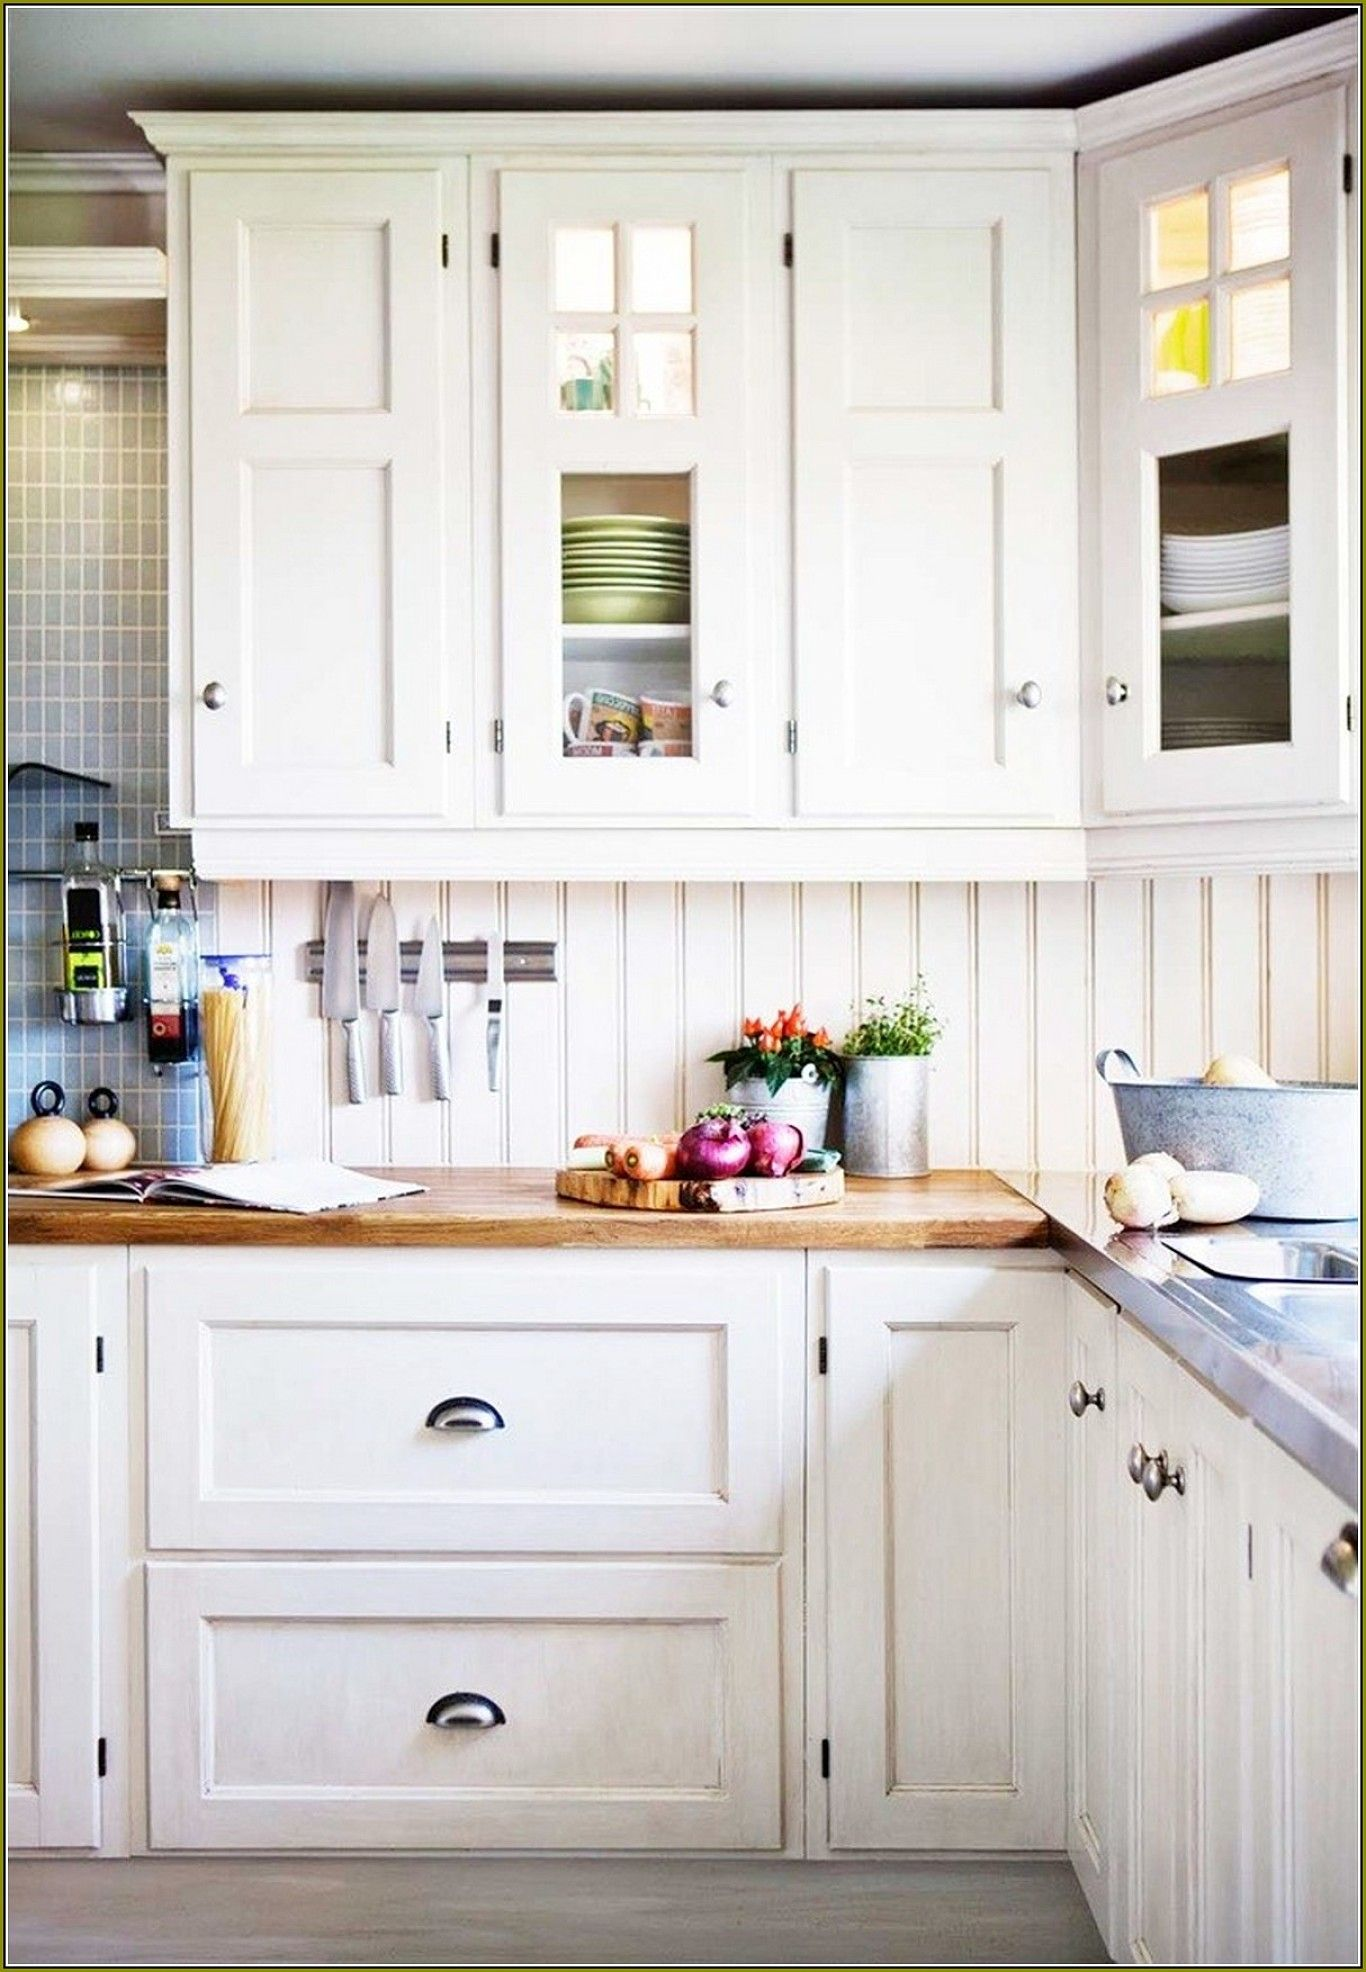 Pin On Cabinet Kitchen Ideas